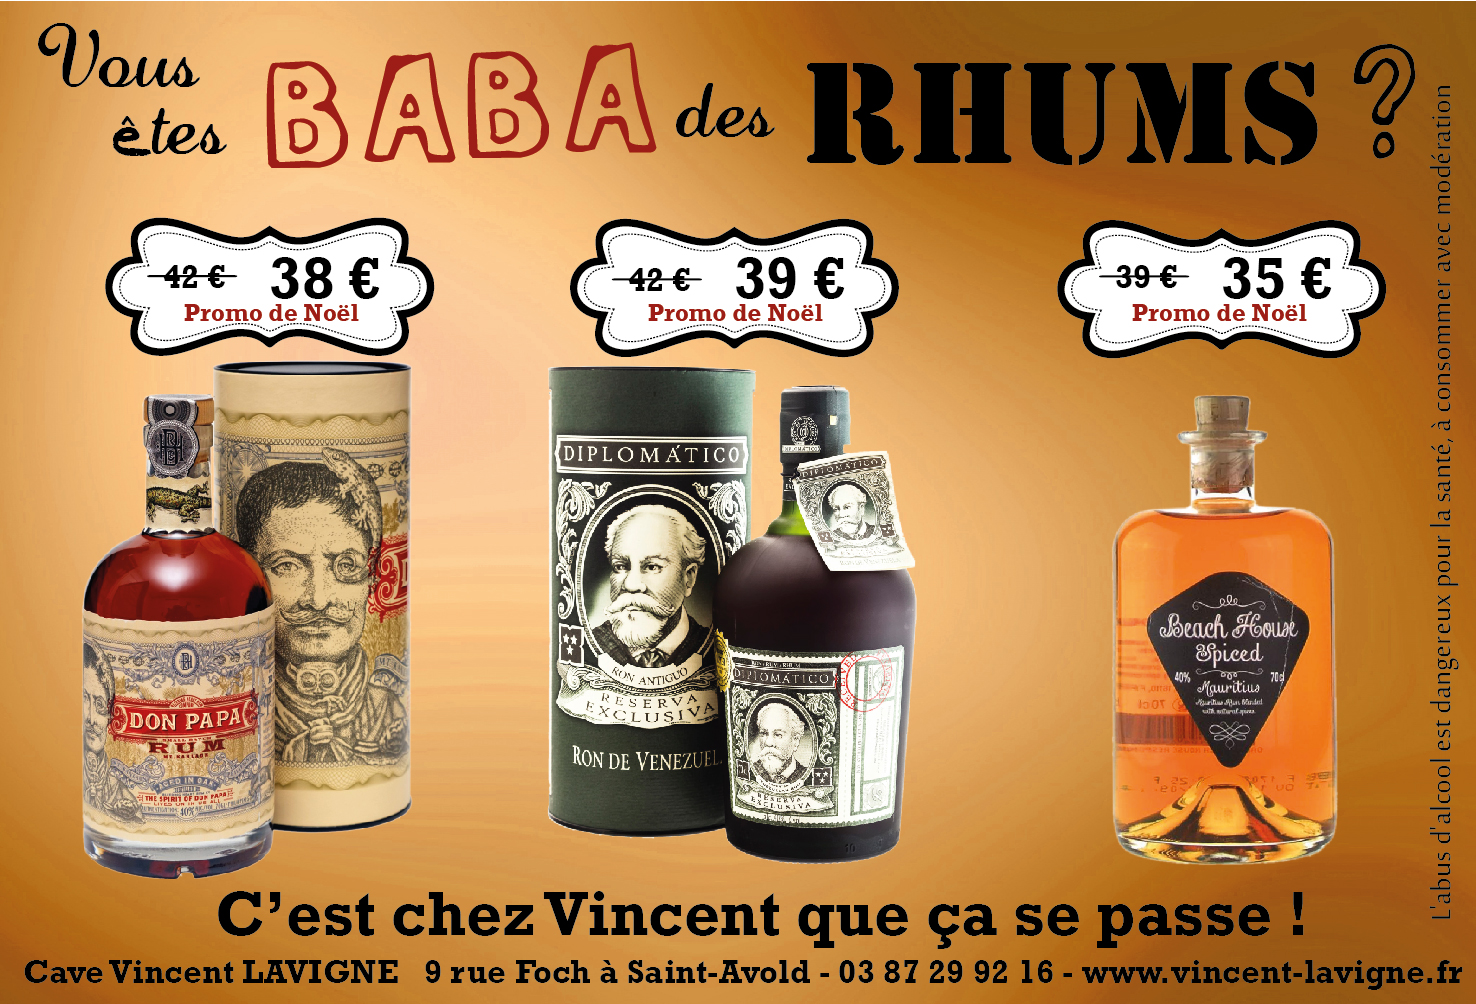 newsletter-2014-12-Rhums-v1-01